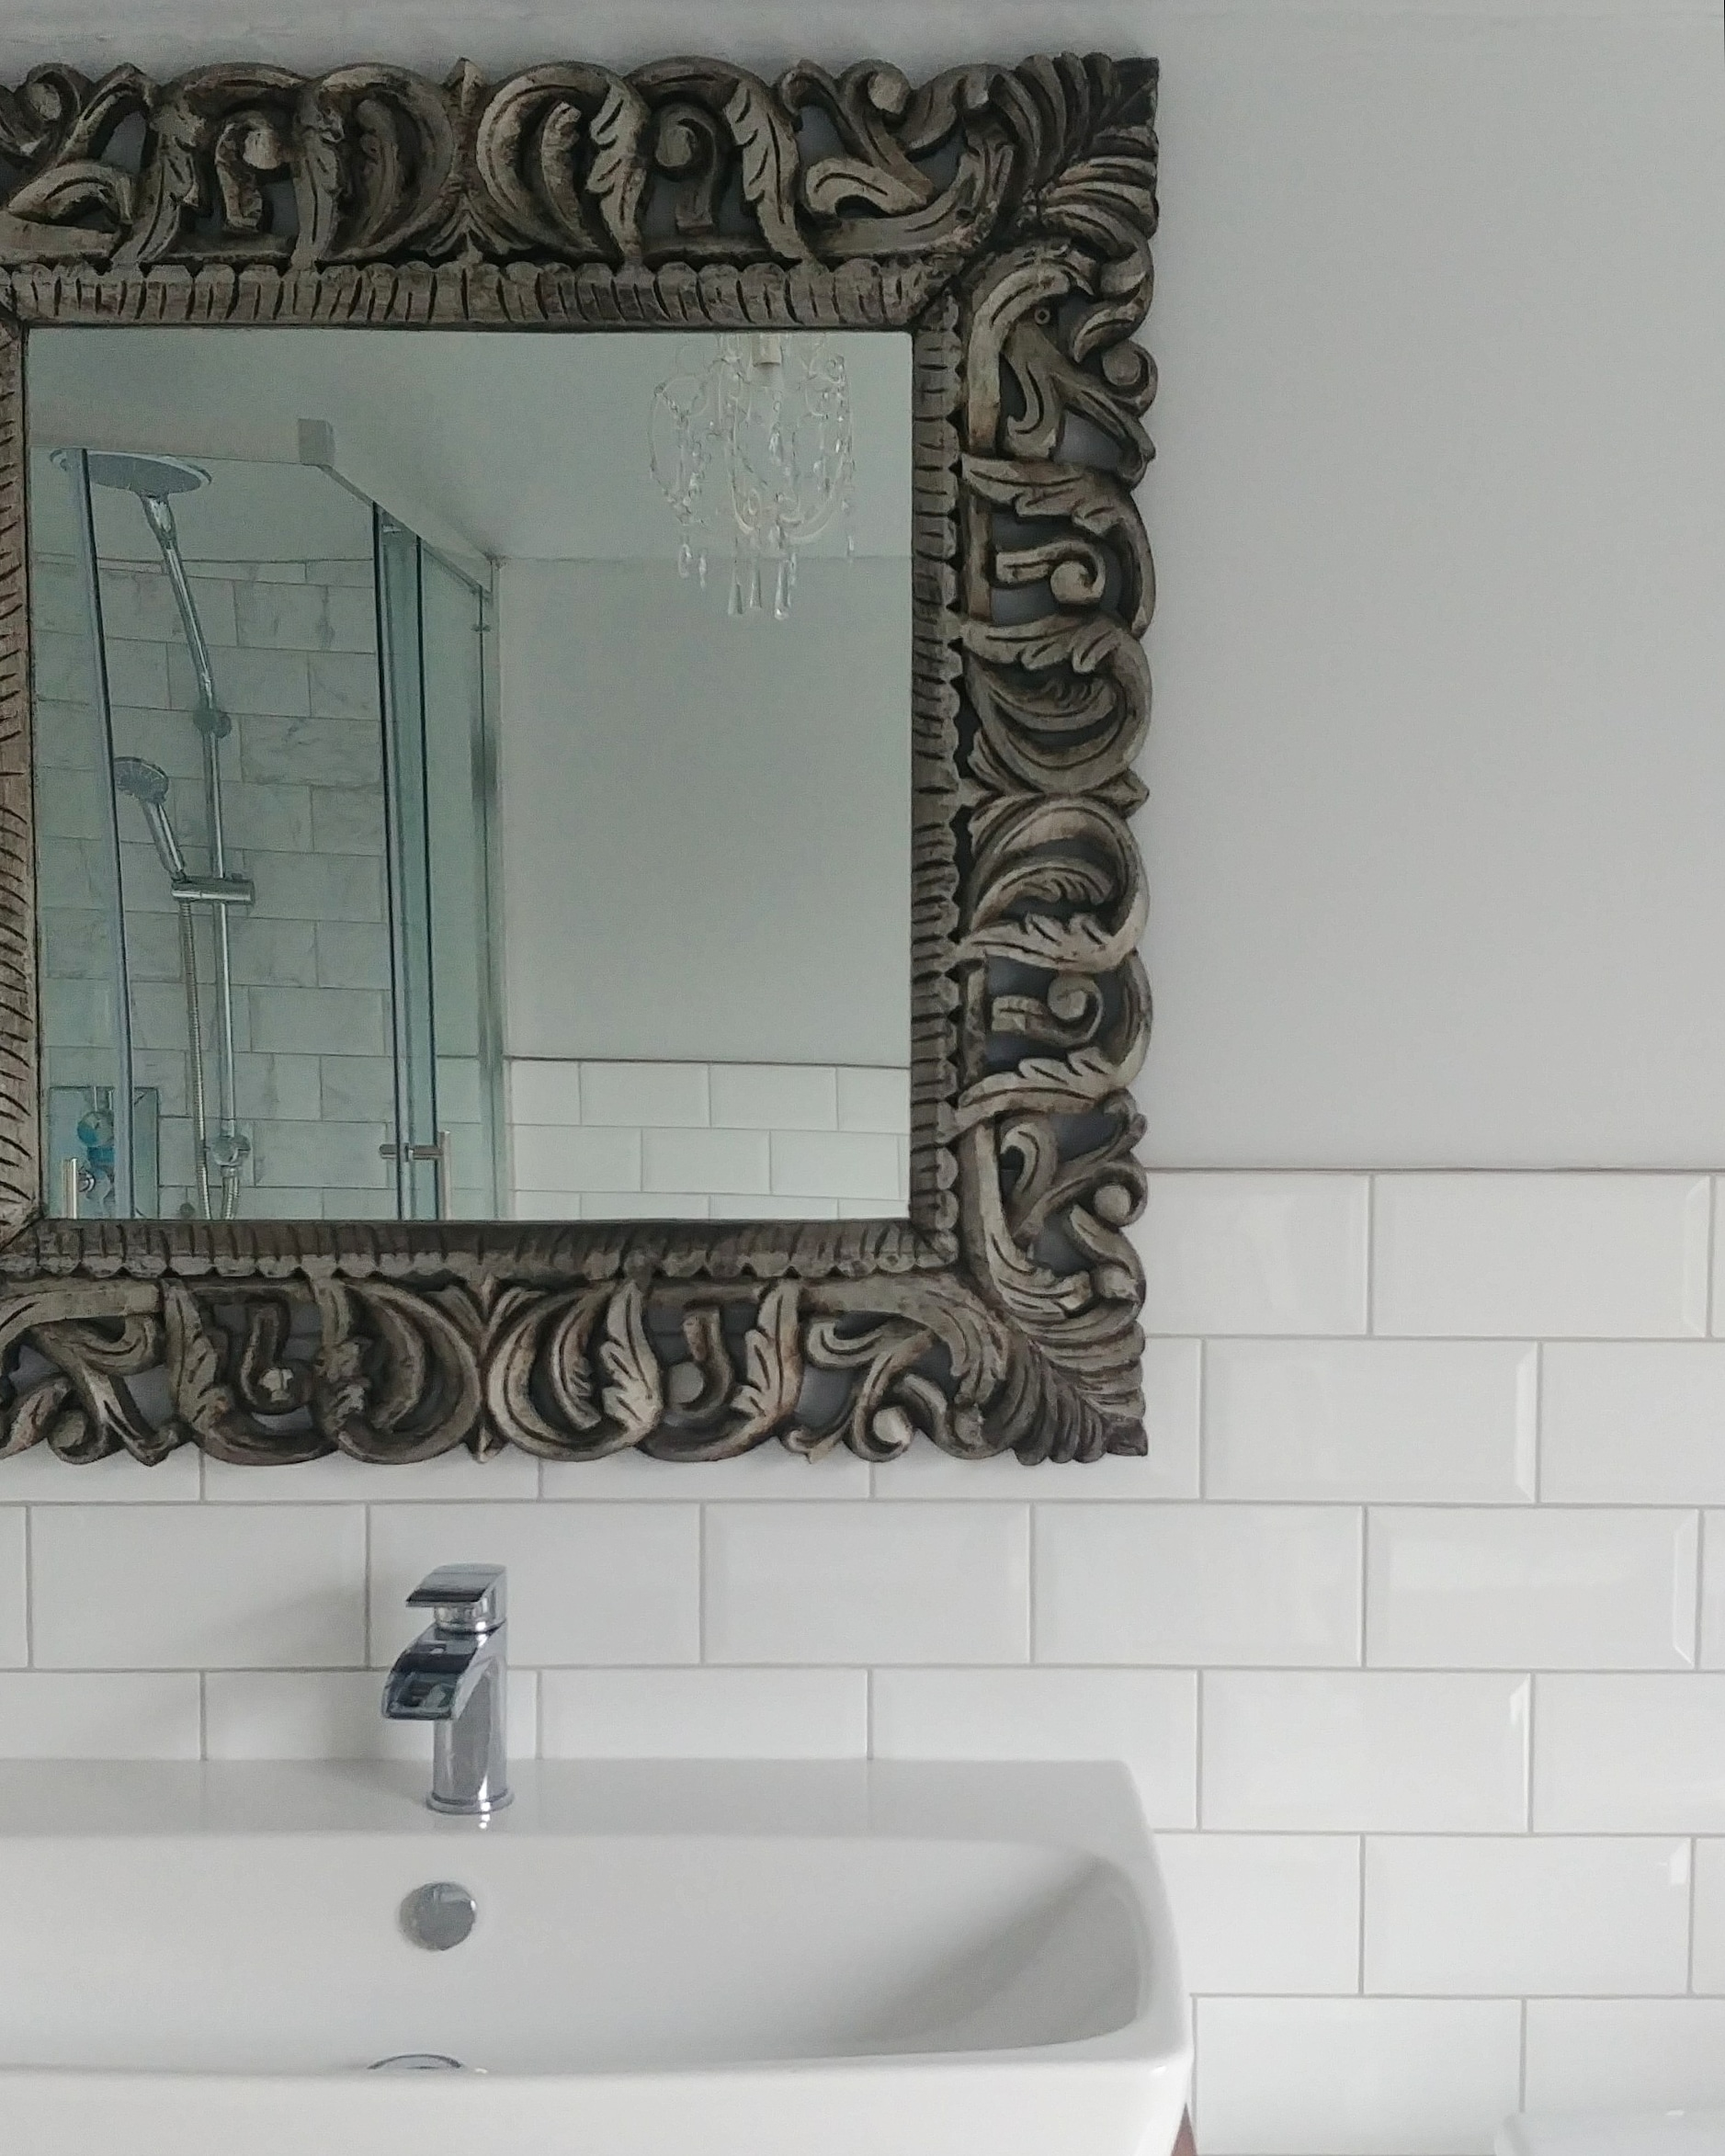 The shower and chandelier reflected in the mirror above the sink. I looked all over the internet for a suitable carved mirror and then realised we had the perfect option hanging in our hallway, which we purchased on holiday in the south of France eight years ago.